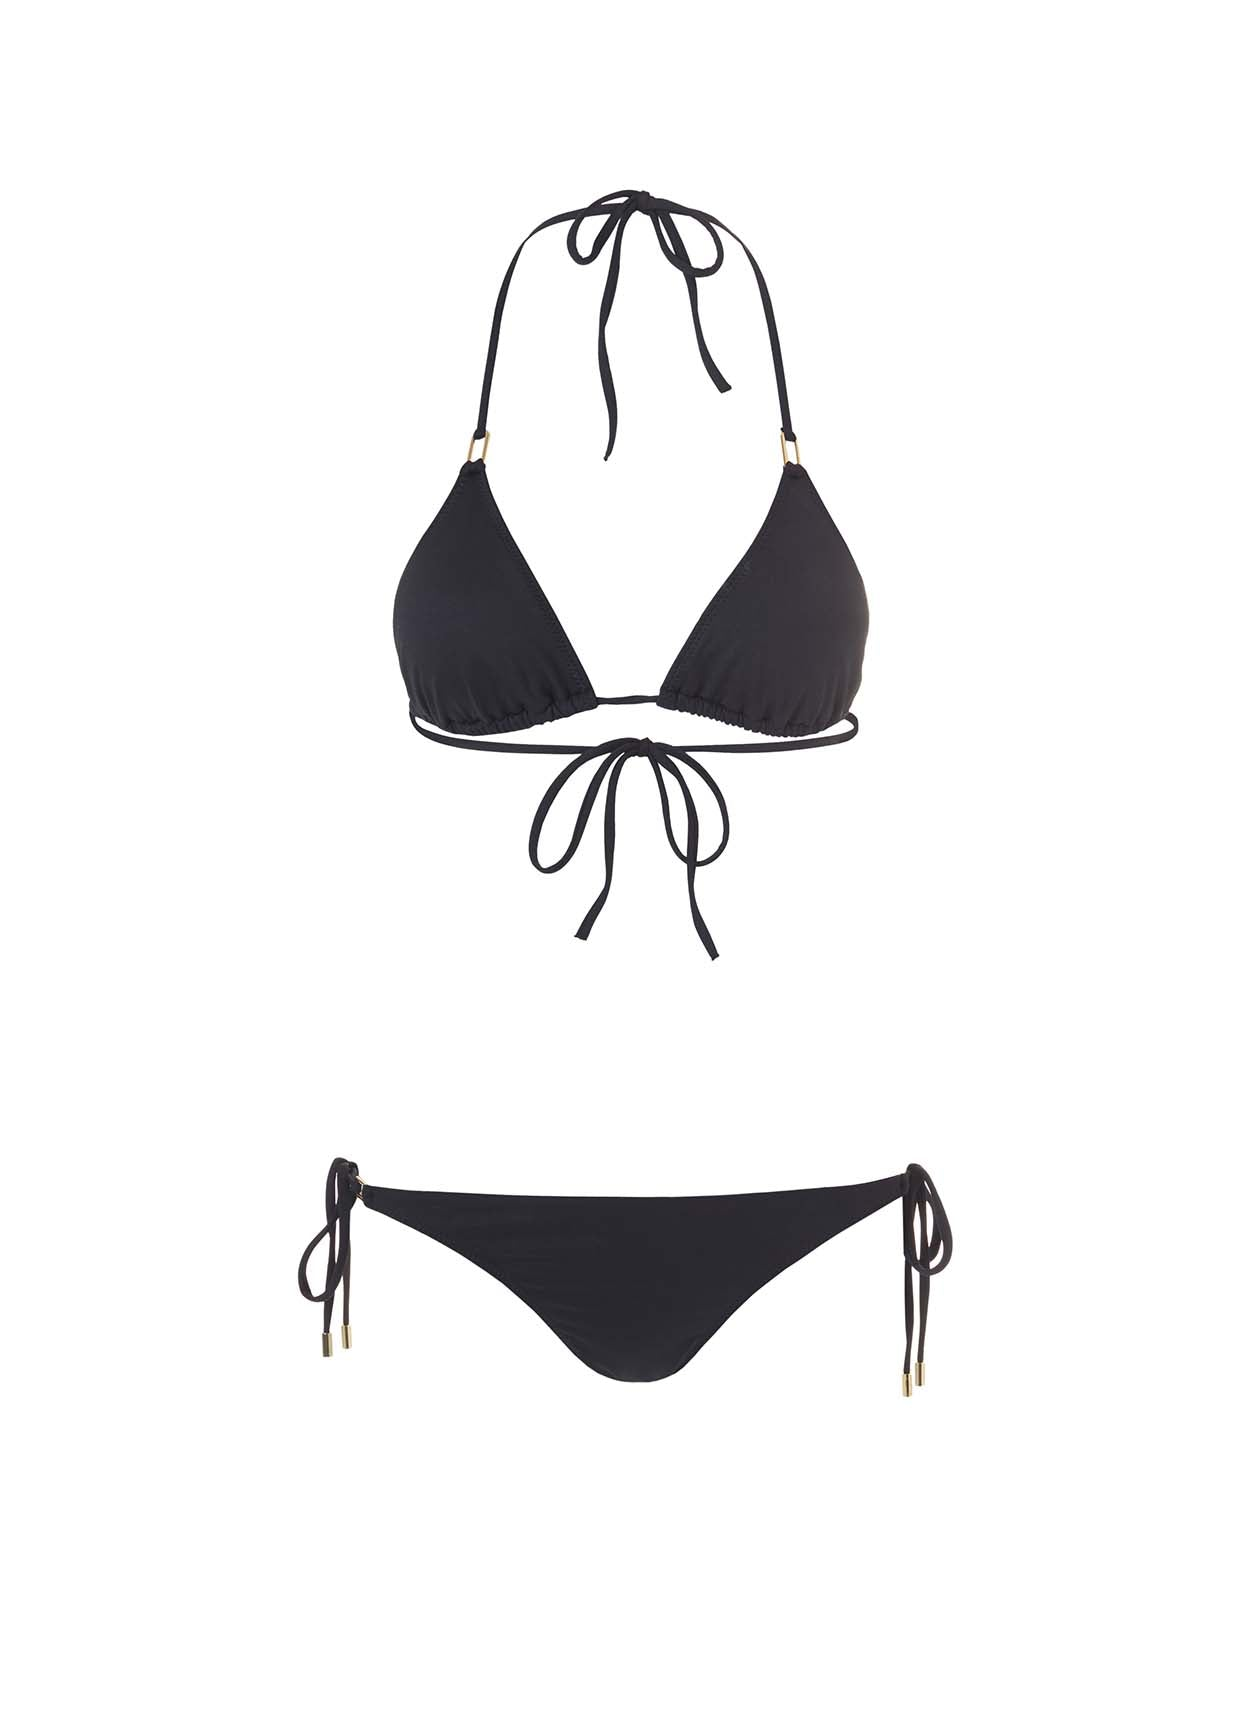 Cancun Black Triangle Bikini